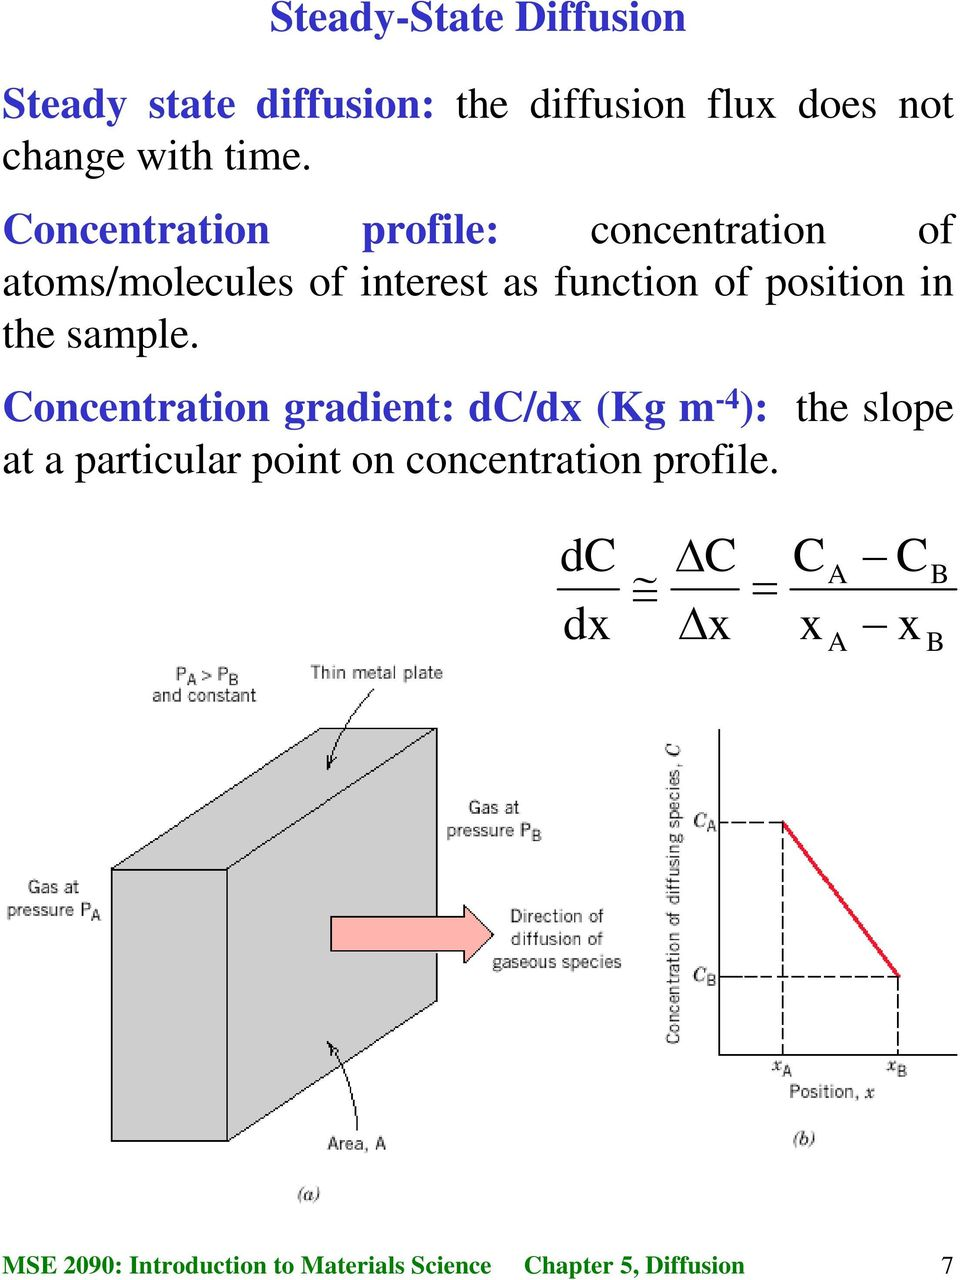 Concentration profile: concentration of atoms/molecules of interest as function